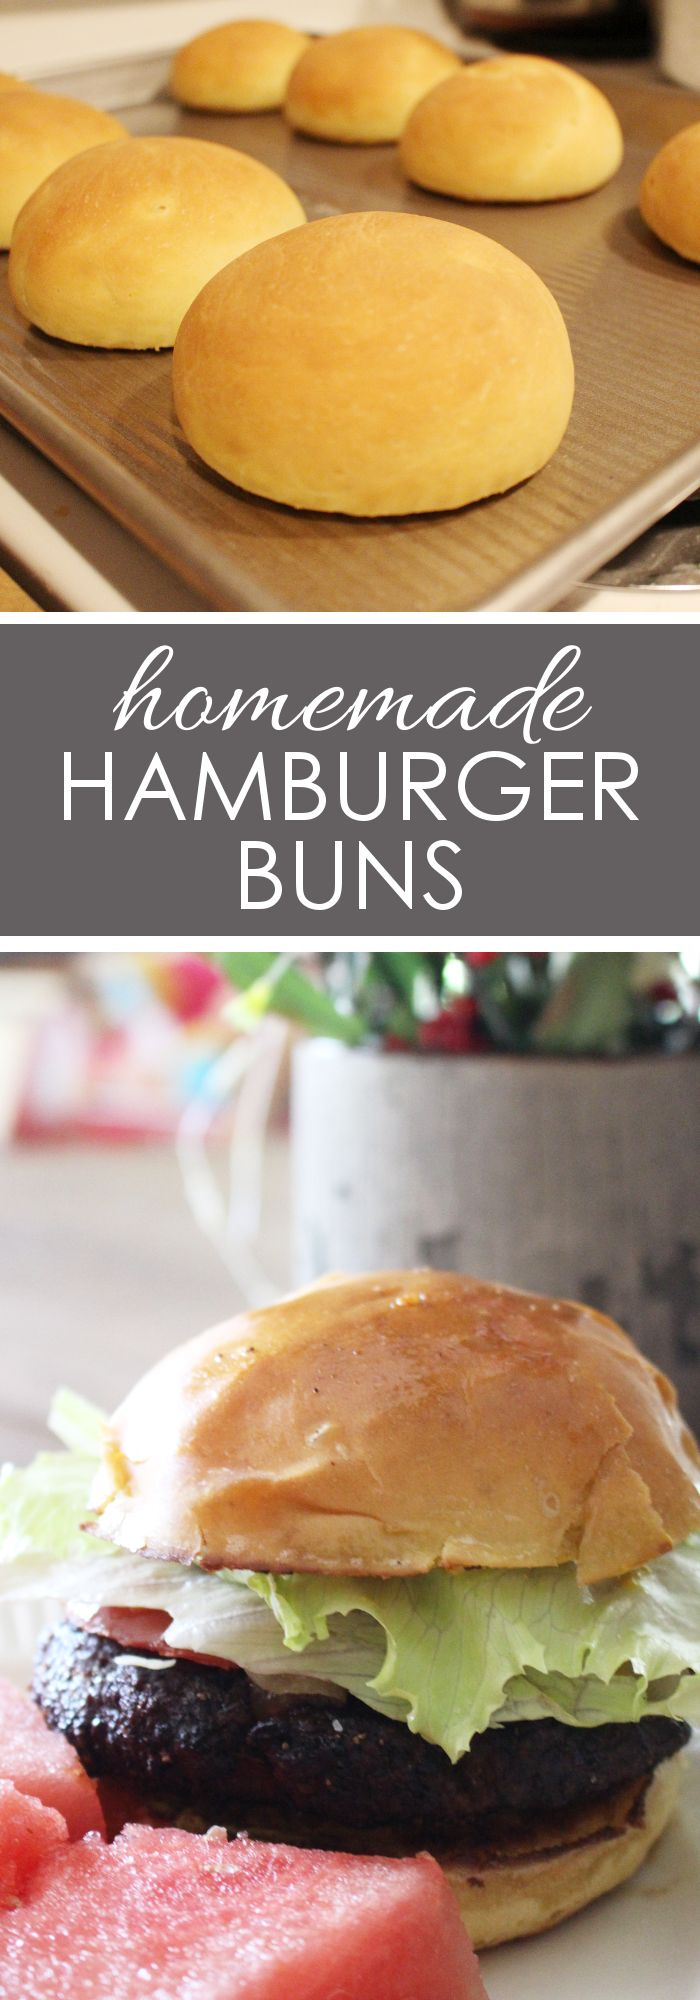 Ditching processed bread products has never been easier with this homemade einkorn hamburger bun recipe! With only 15 minutes of hands on time, this recipe is easy and delicious!